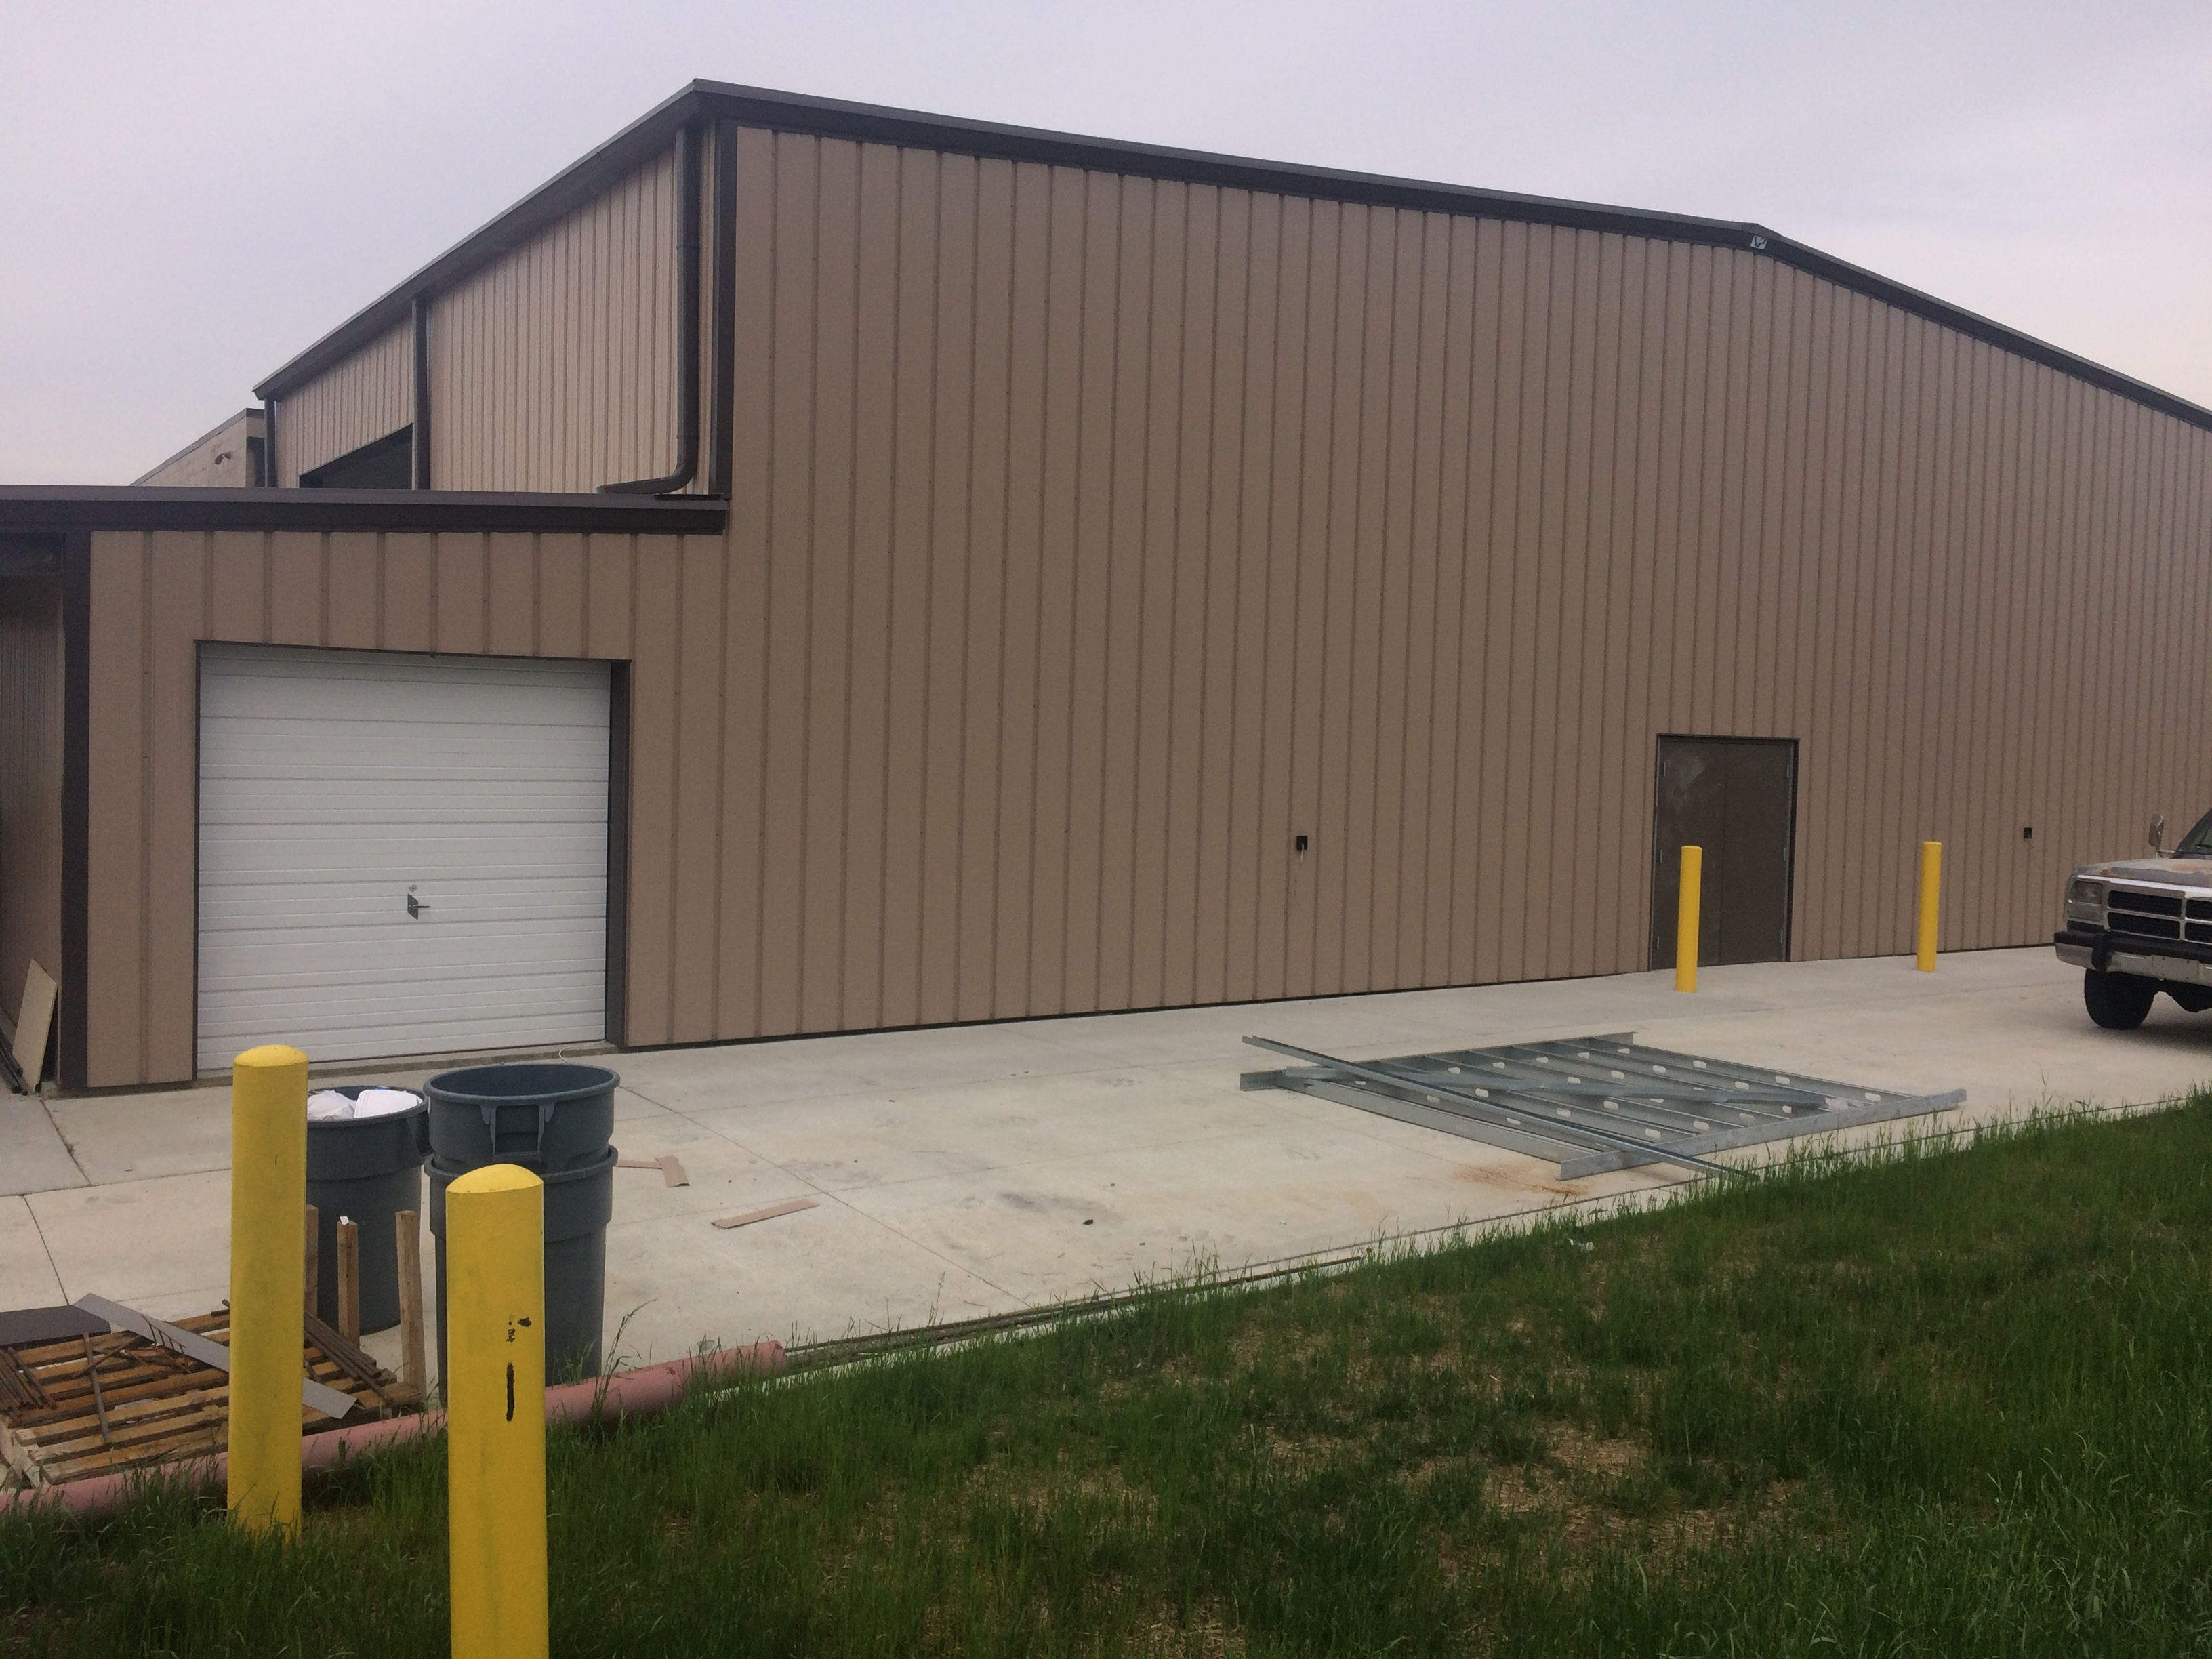 garage view 3, loves, jeffersonville oh,, shopping, supermarket, retail, commercial, commercial construction